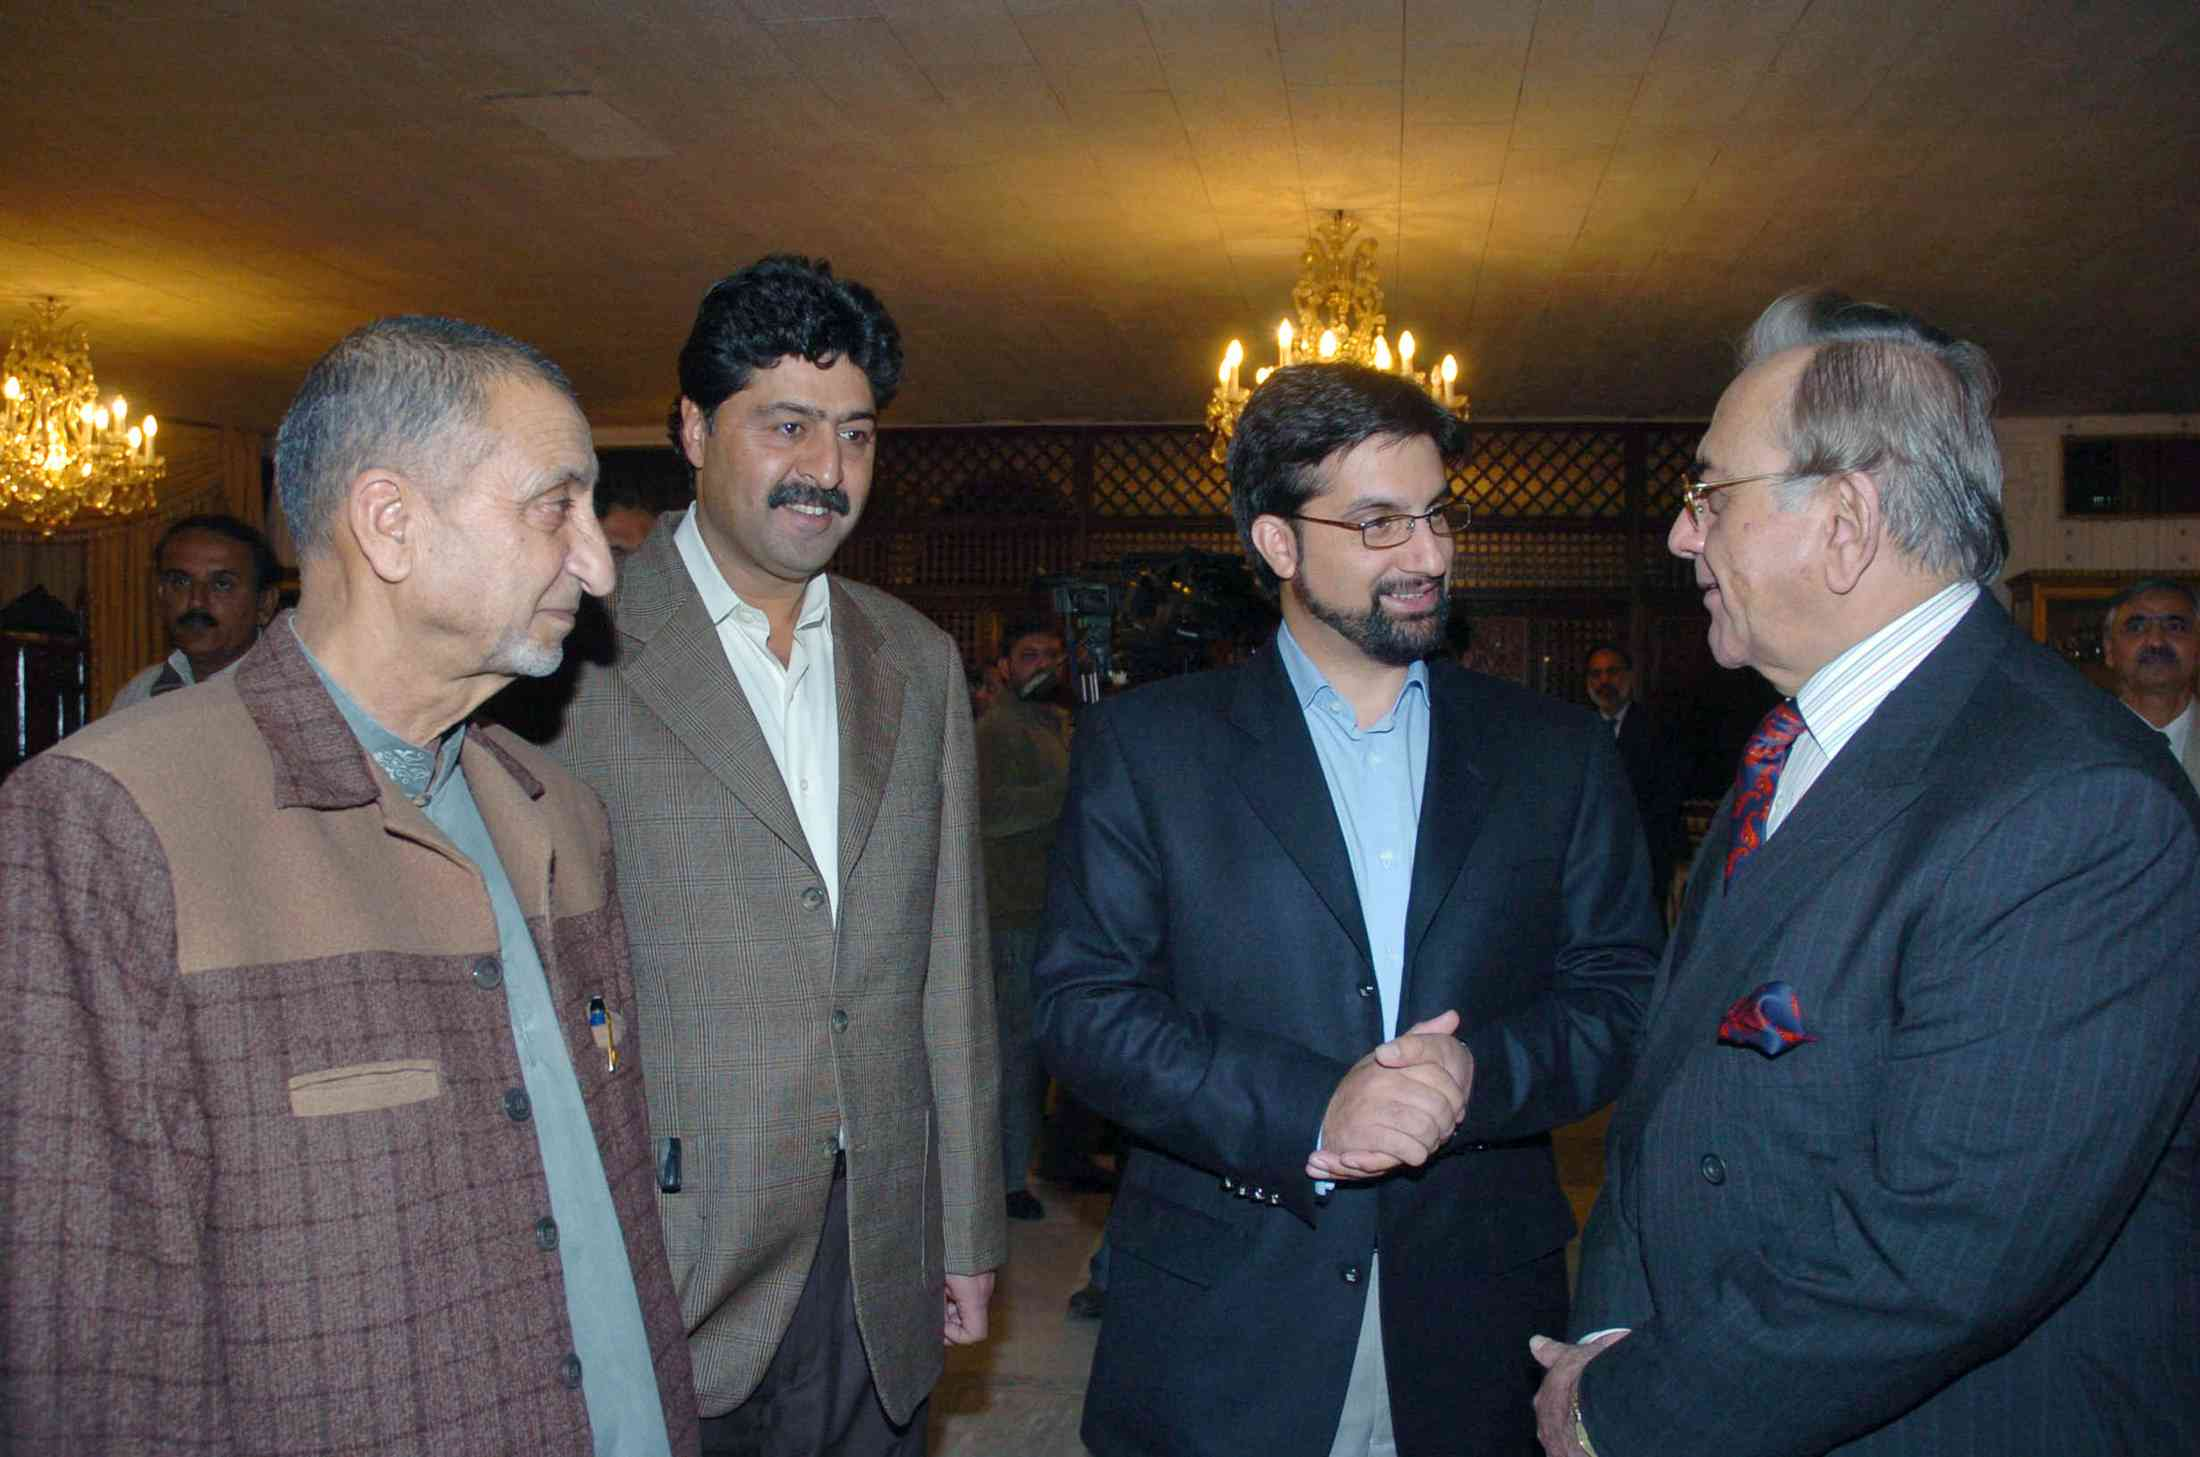 Hurriyat Conference leaders Abdul Gani Bhat, Bilal Gani Lone and Mirwaiz Umar Farooq with Pakistan's former Foreign Minister Khurshid Mahmud Kasuri, right, in Islamabad in 2007. Photo credit: Reuters